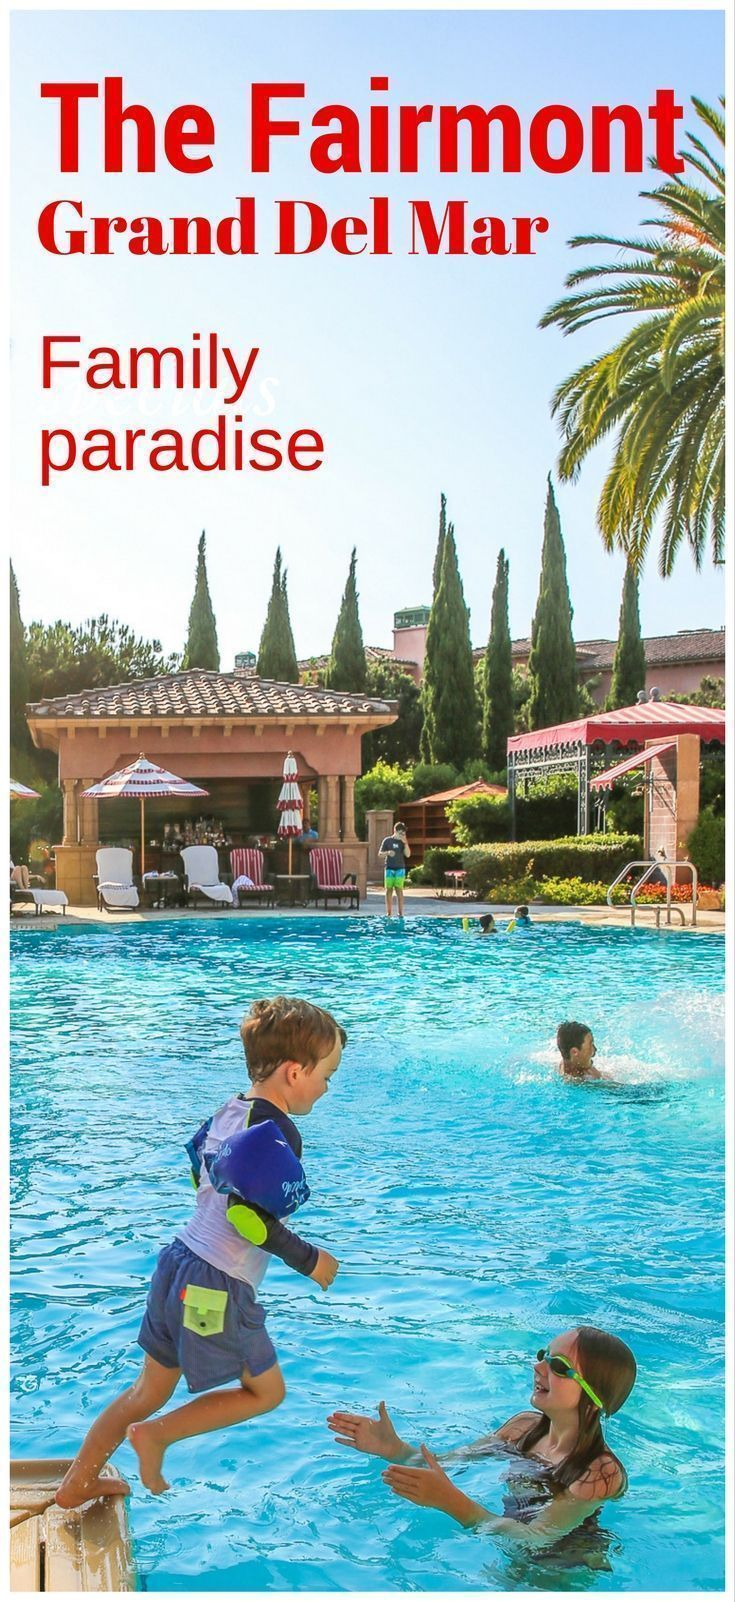 Fairmont Grand Del Mar-An Elegant Family Vacation In The